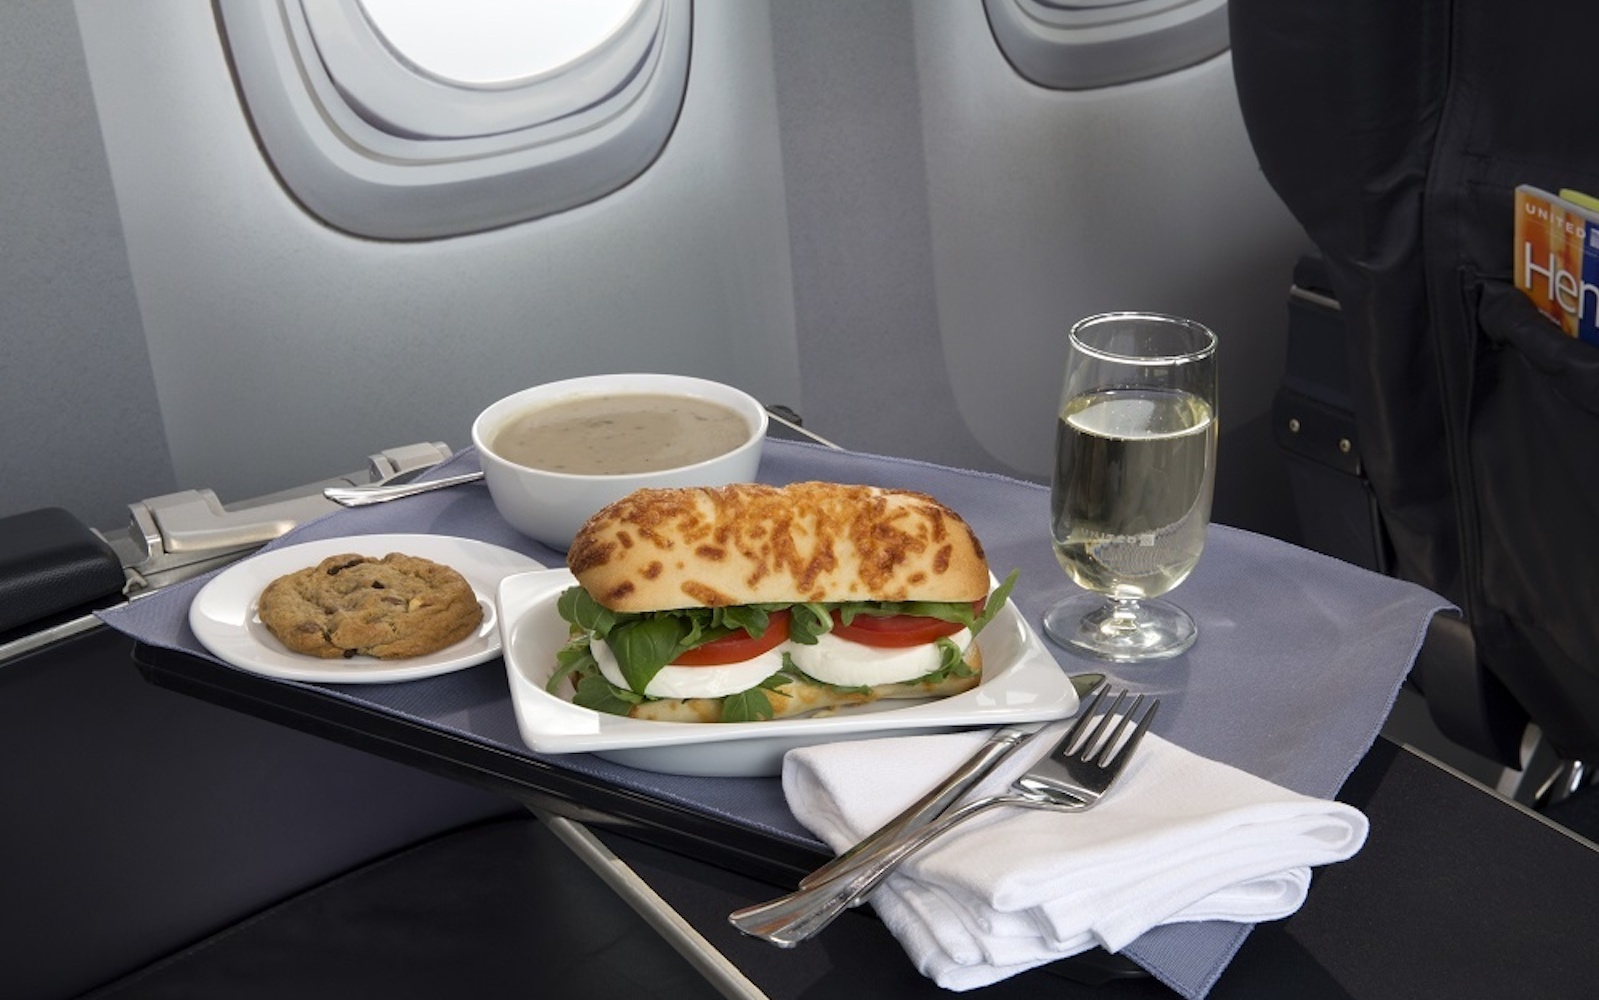 United Airlines Put Out a Cookbook so You Can Eat Airplane Food at Home